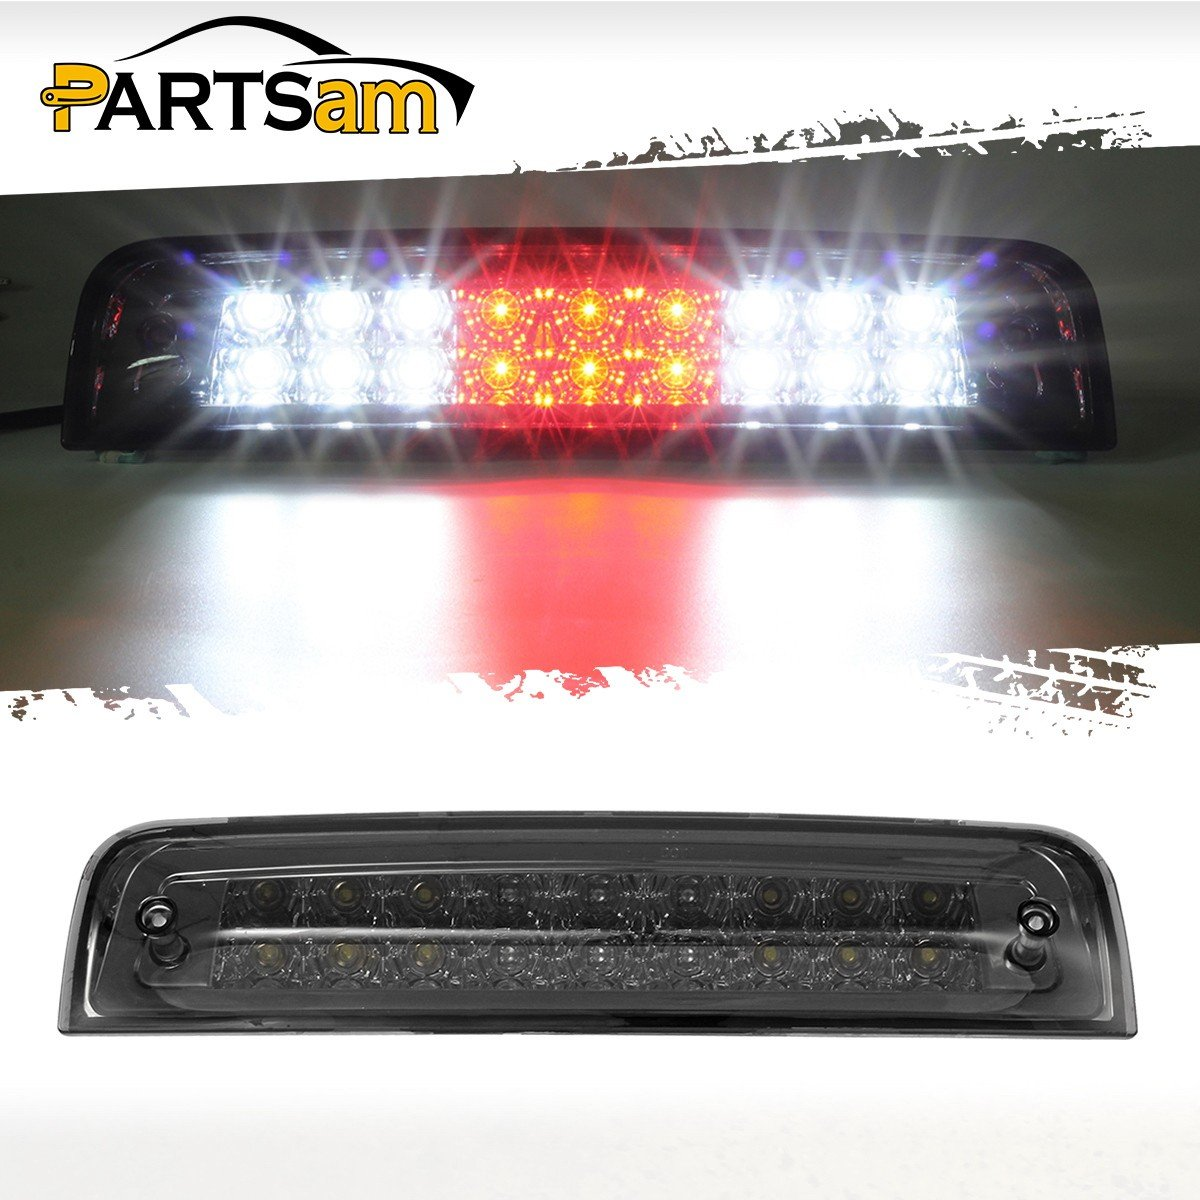 Partsam Smoked Third Brake Light Replacement for 2009-2017 Dodge Ram 1500, 2010-2017 2500 3500 Red/White Dual-Row LED High Mount 3rd Tail Rear Brake Light Cargo Lamp